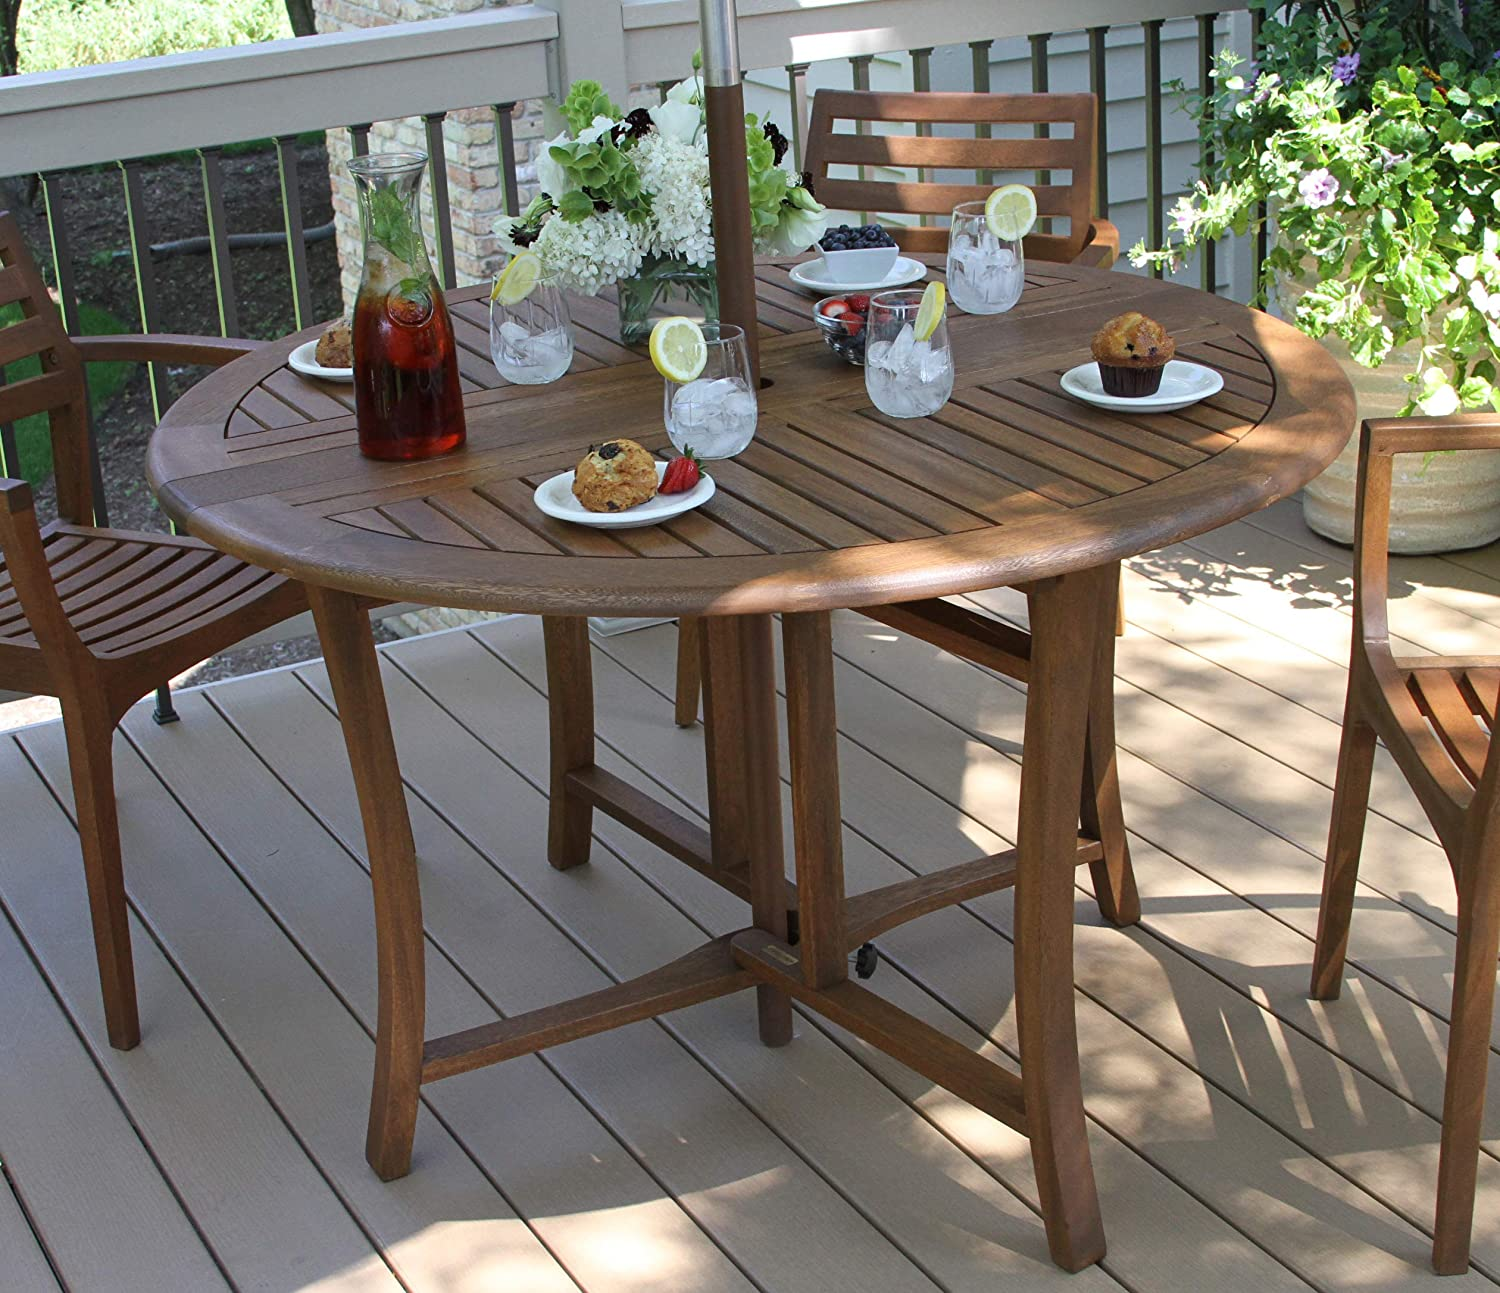 Outdoor Interiors Round Folding Table, 9 Inch, Brown